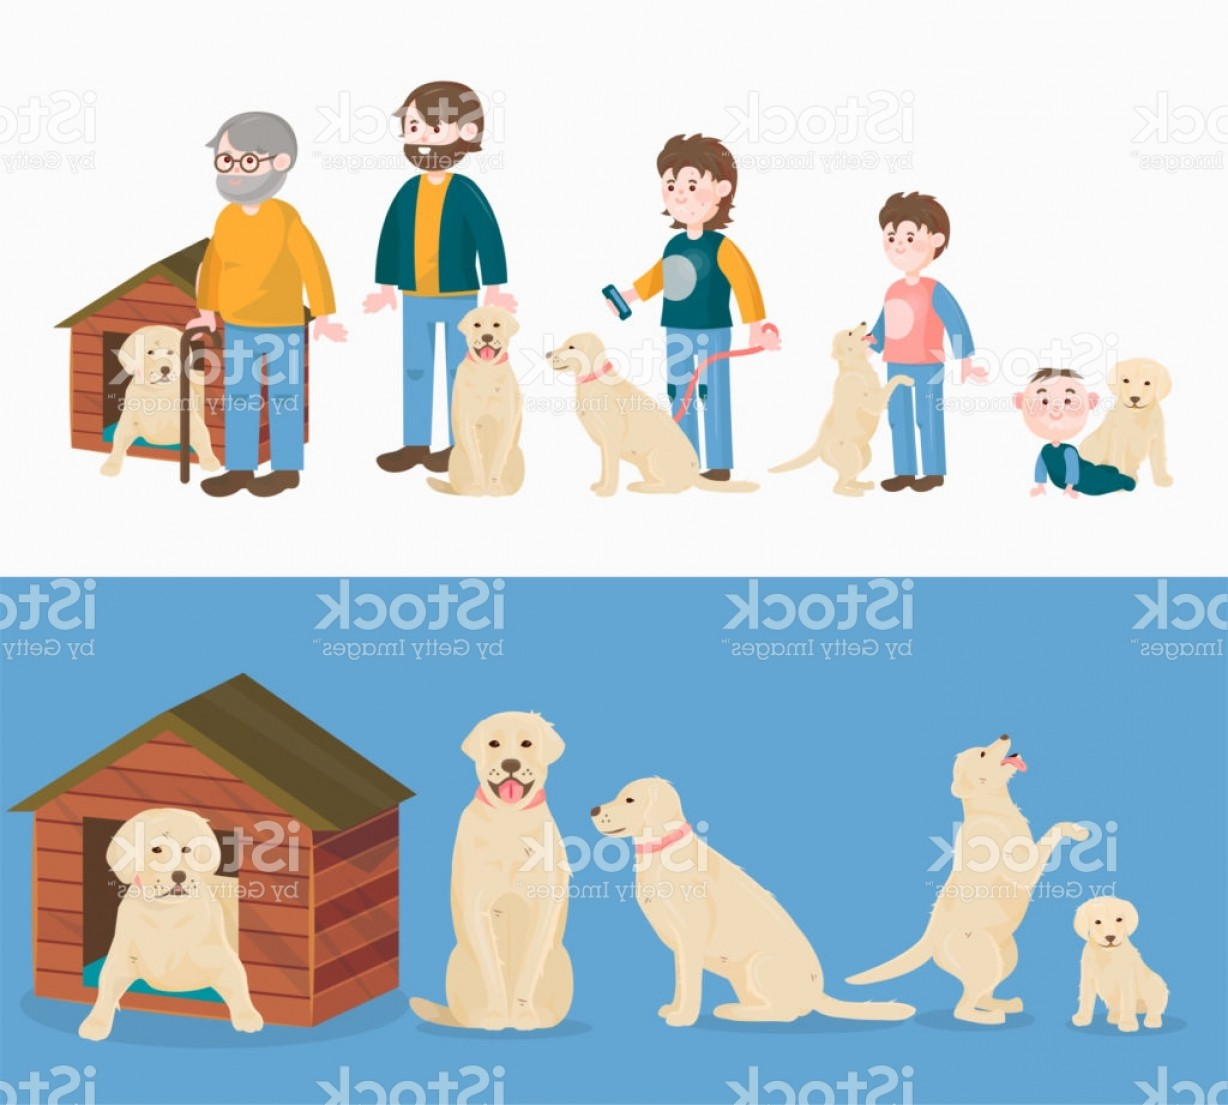 Growth Vector People: Child Growth Vector Dog Growing And Aging Concept From Baby Or Puppy To Aged Man Or Gm